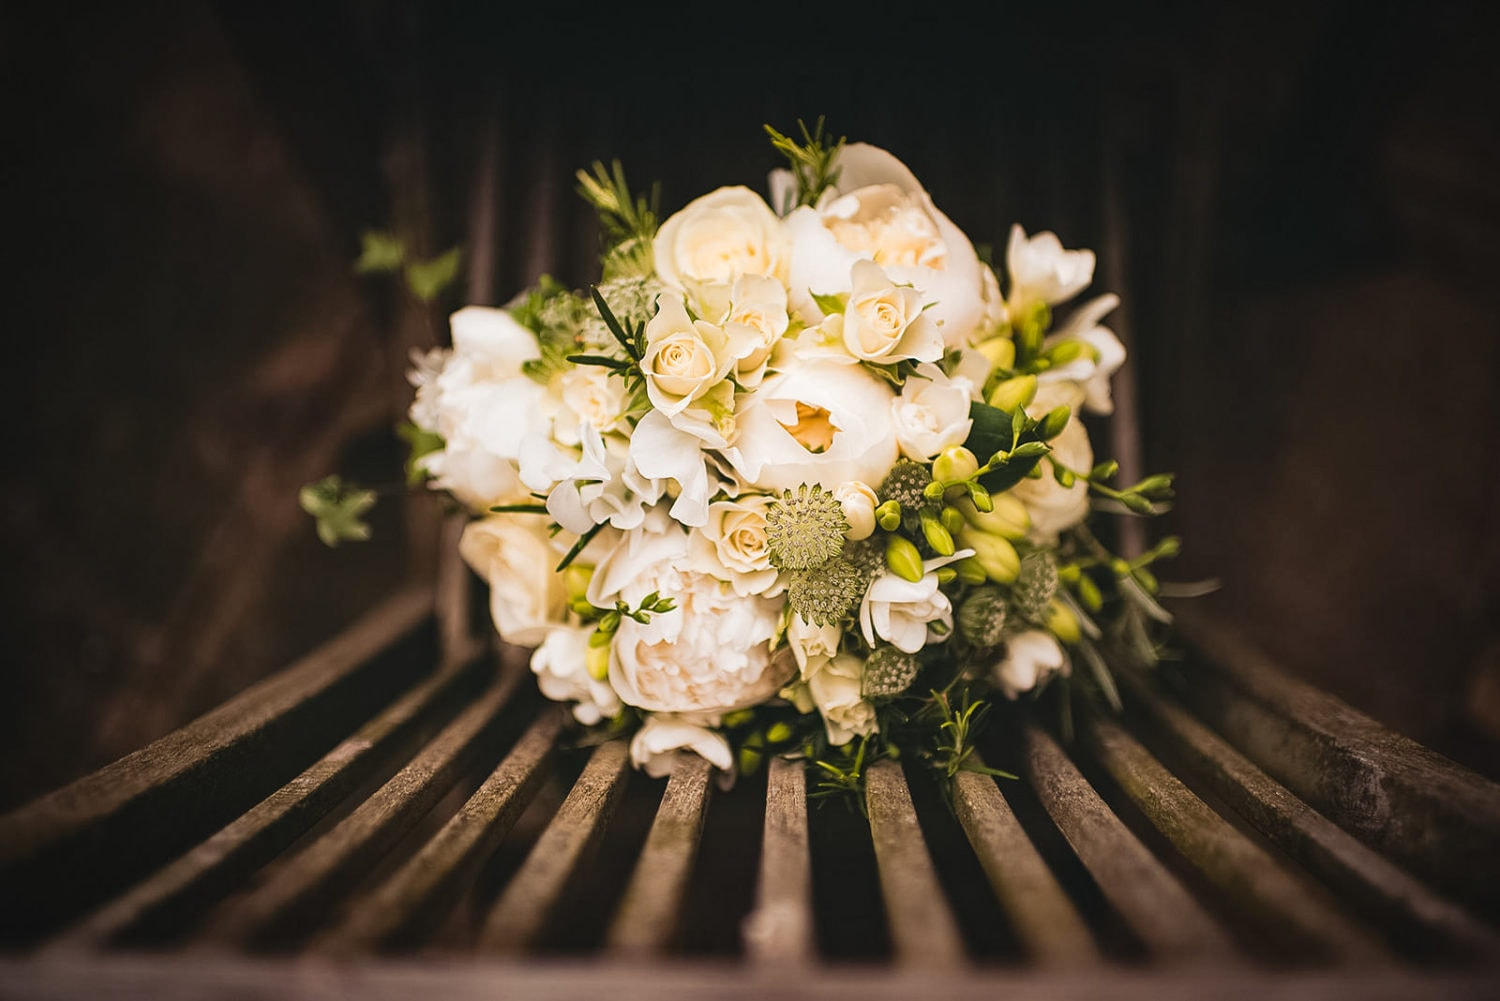 White wedding bouquet with white roses, fresias and peonies